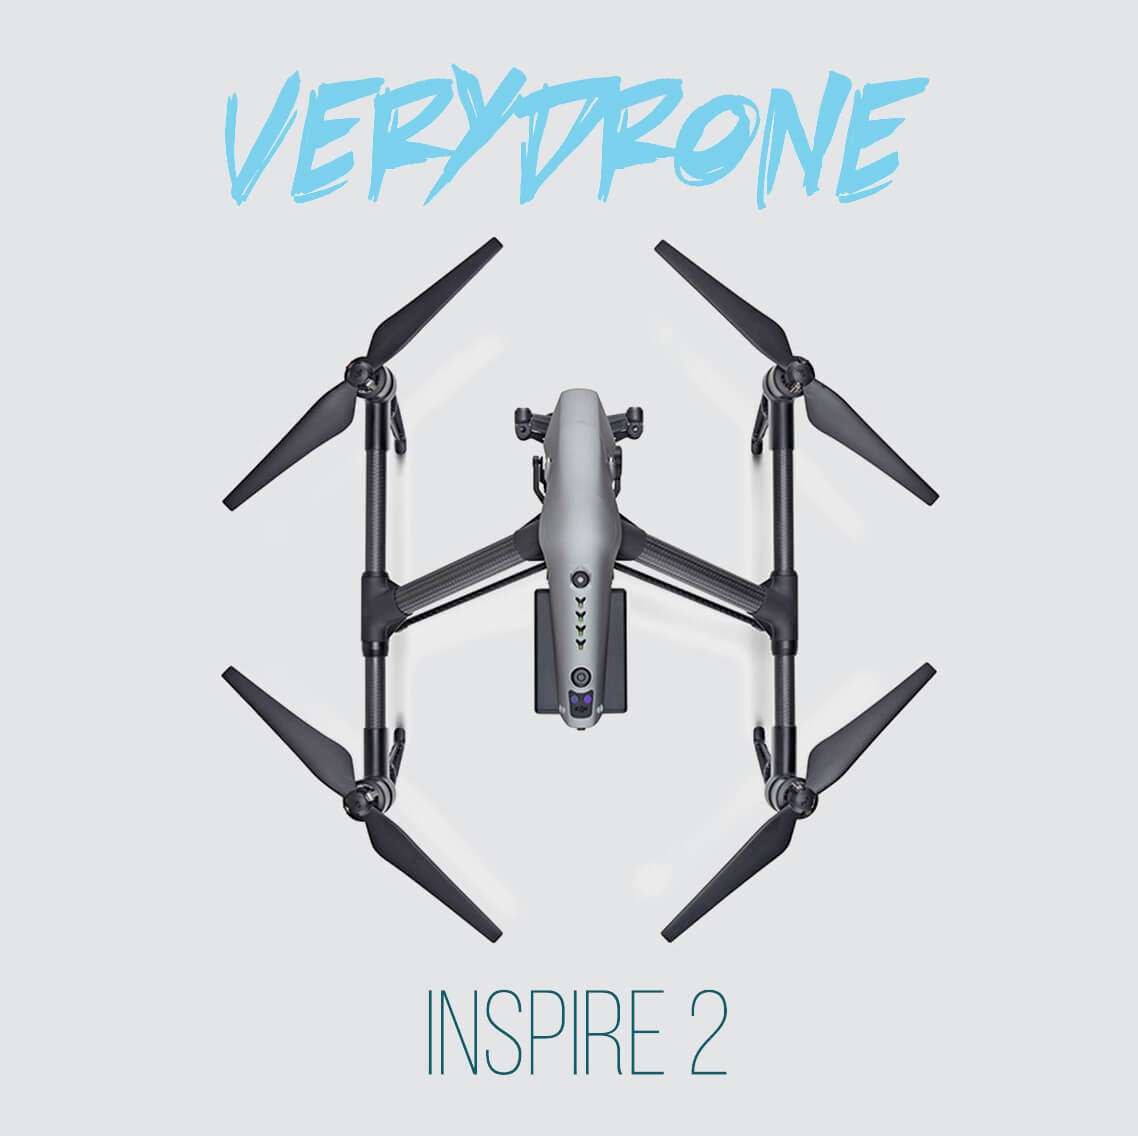 Dji Inspire 2 Filmmaker Quadcopter Drone With Fpv Camera